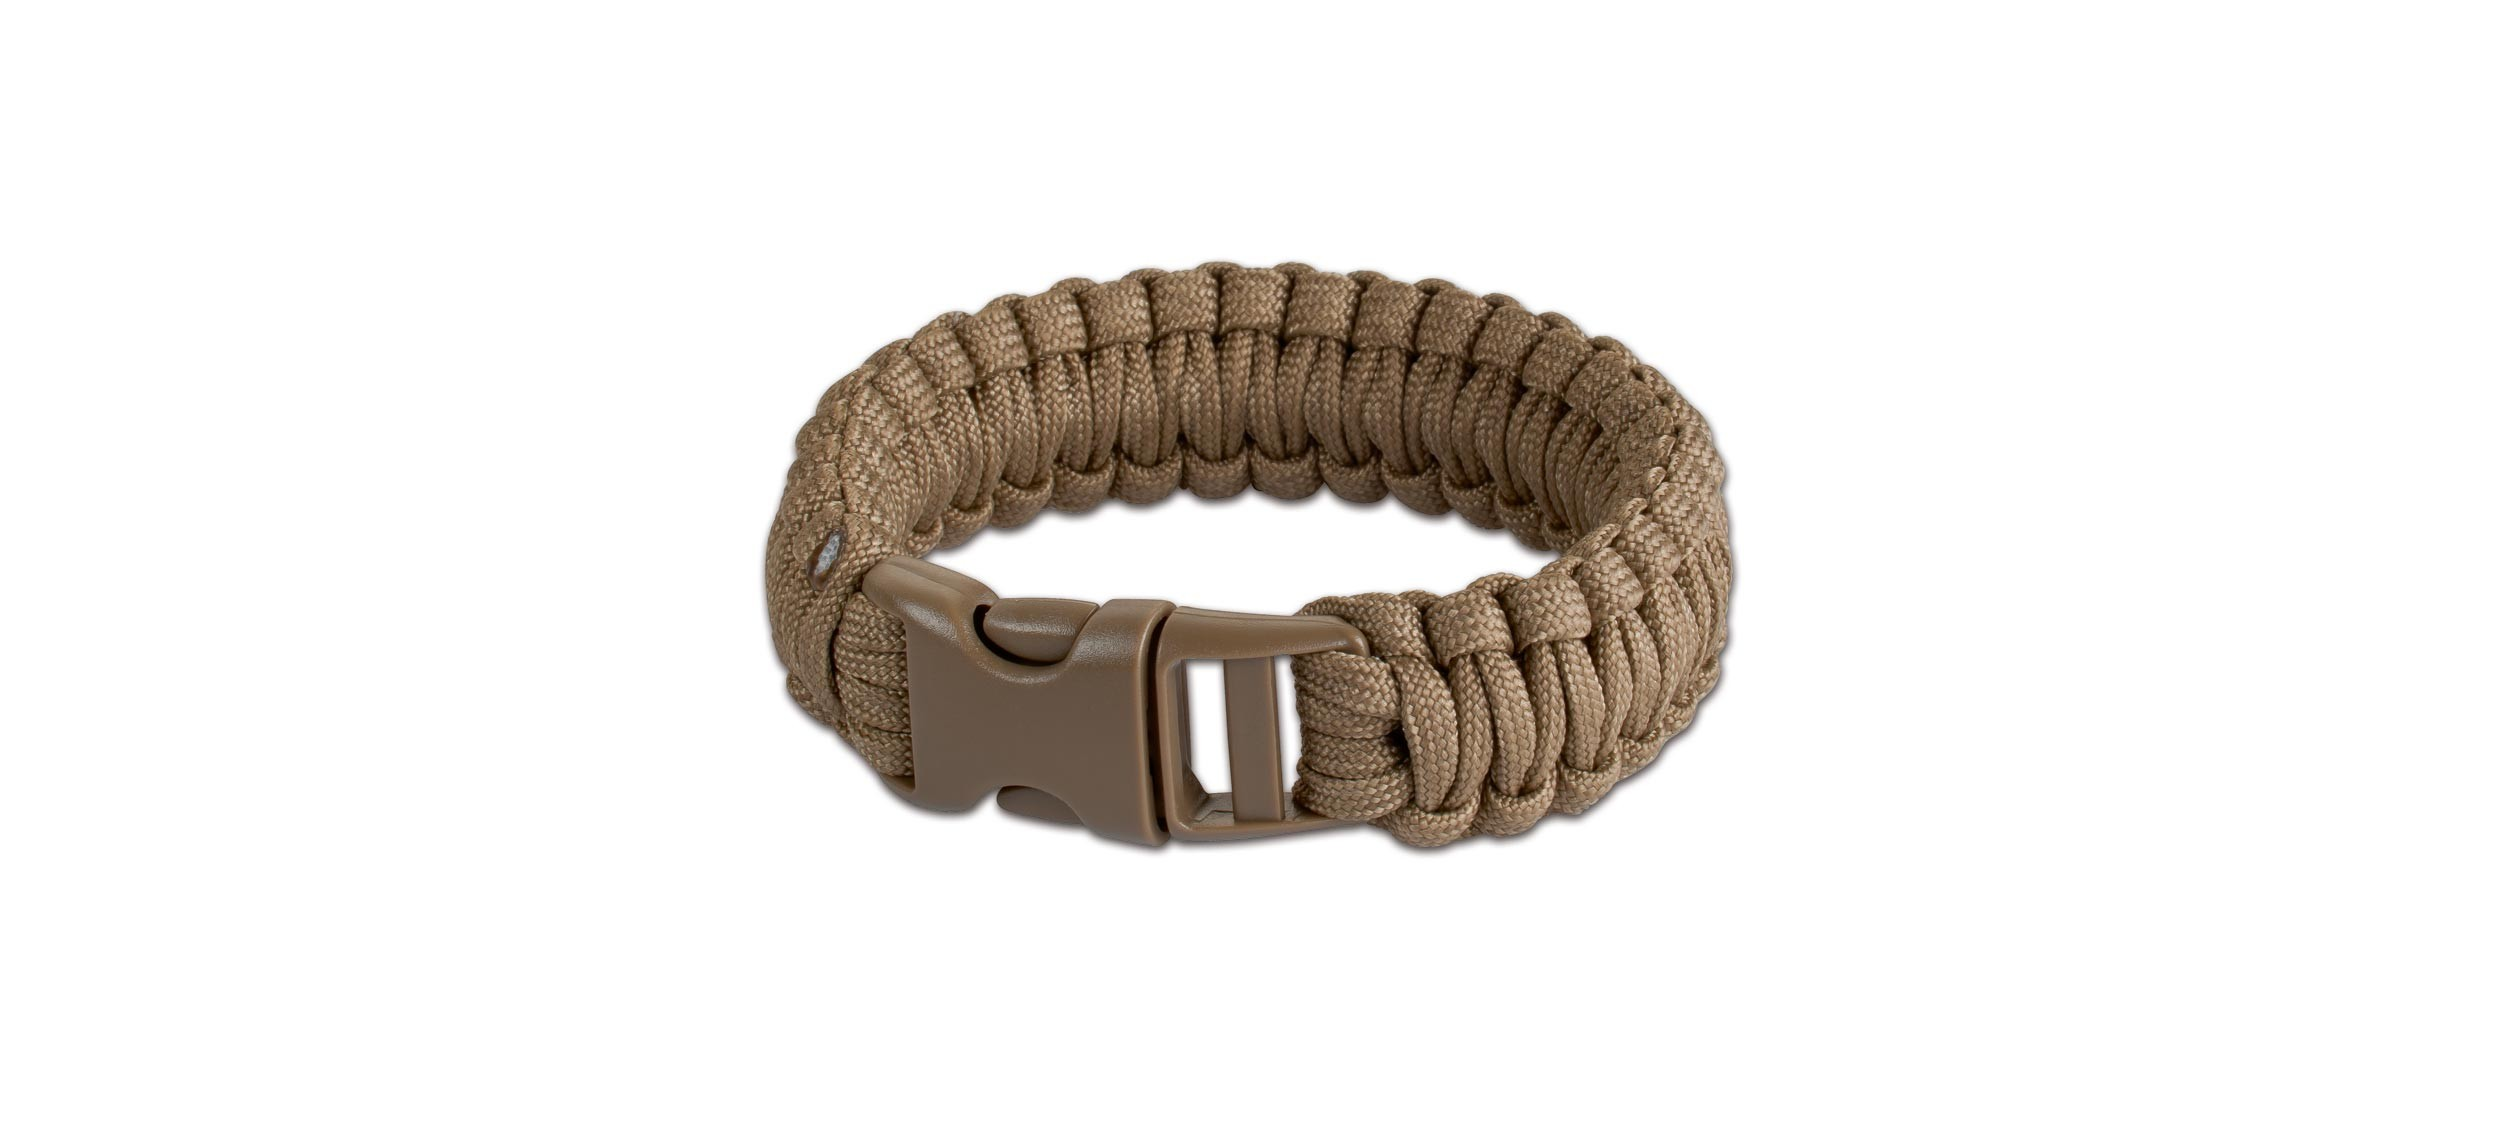 09JG243 - BOKER PLUS SURVIVAL BRACELET COYOTE 9